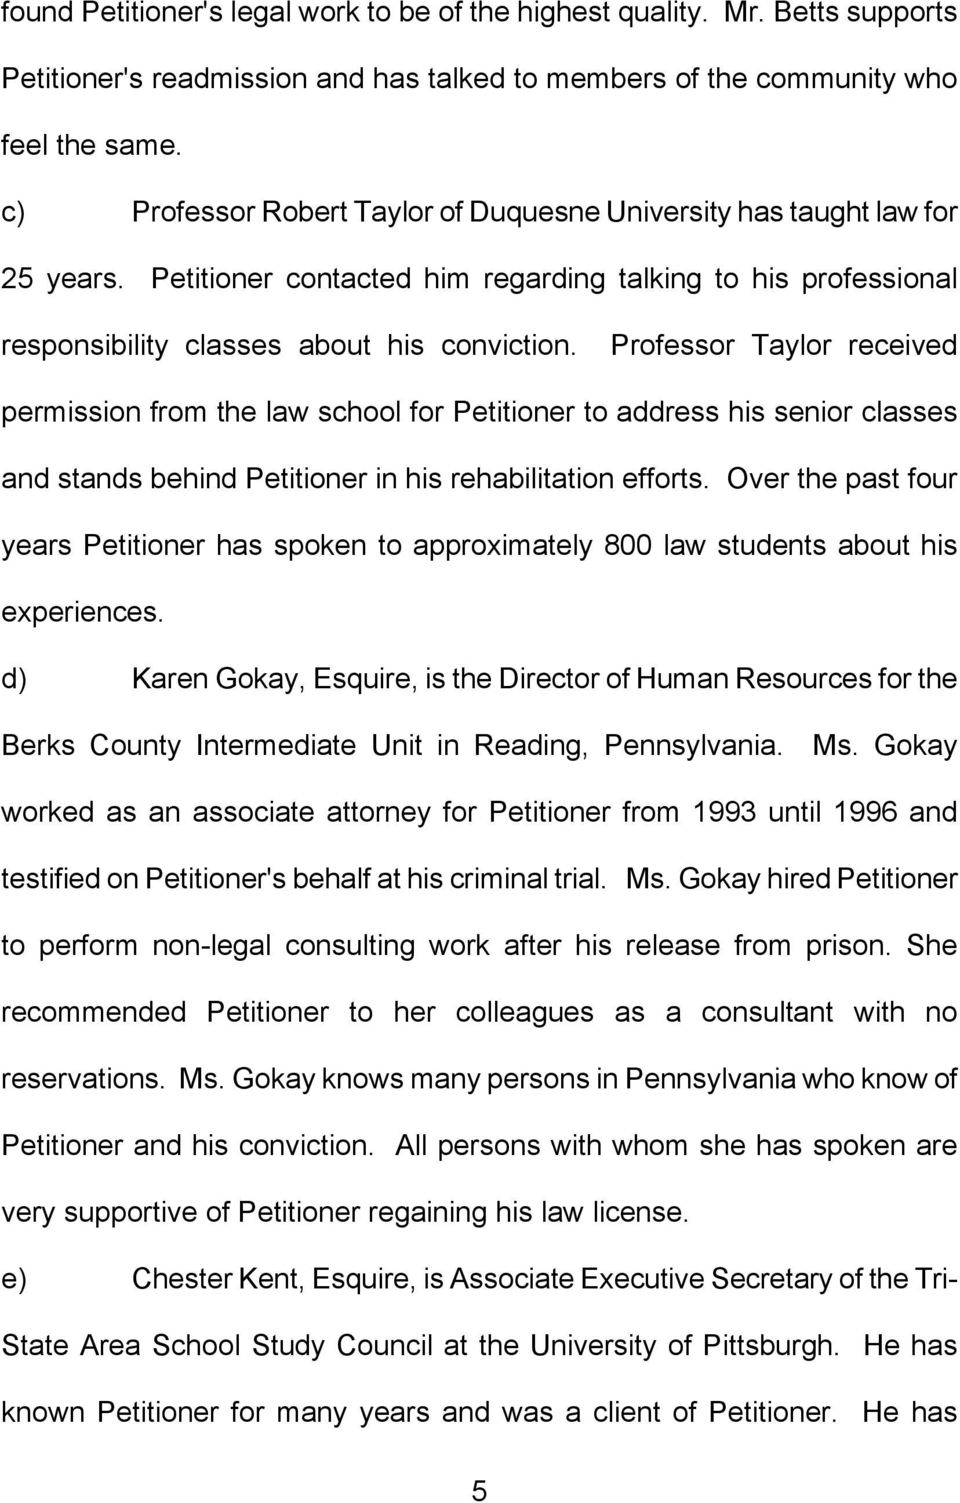 Professor Taylor received permission from the law school for Petitioner to address his senior classes and stands behind Petitioner in his rehabilitation efforts.